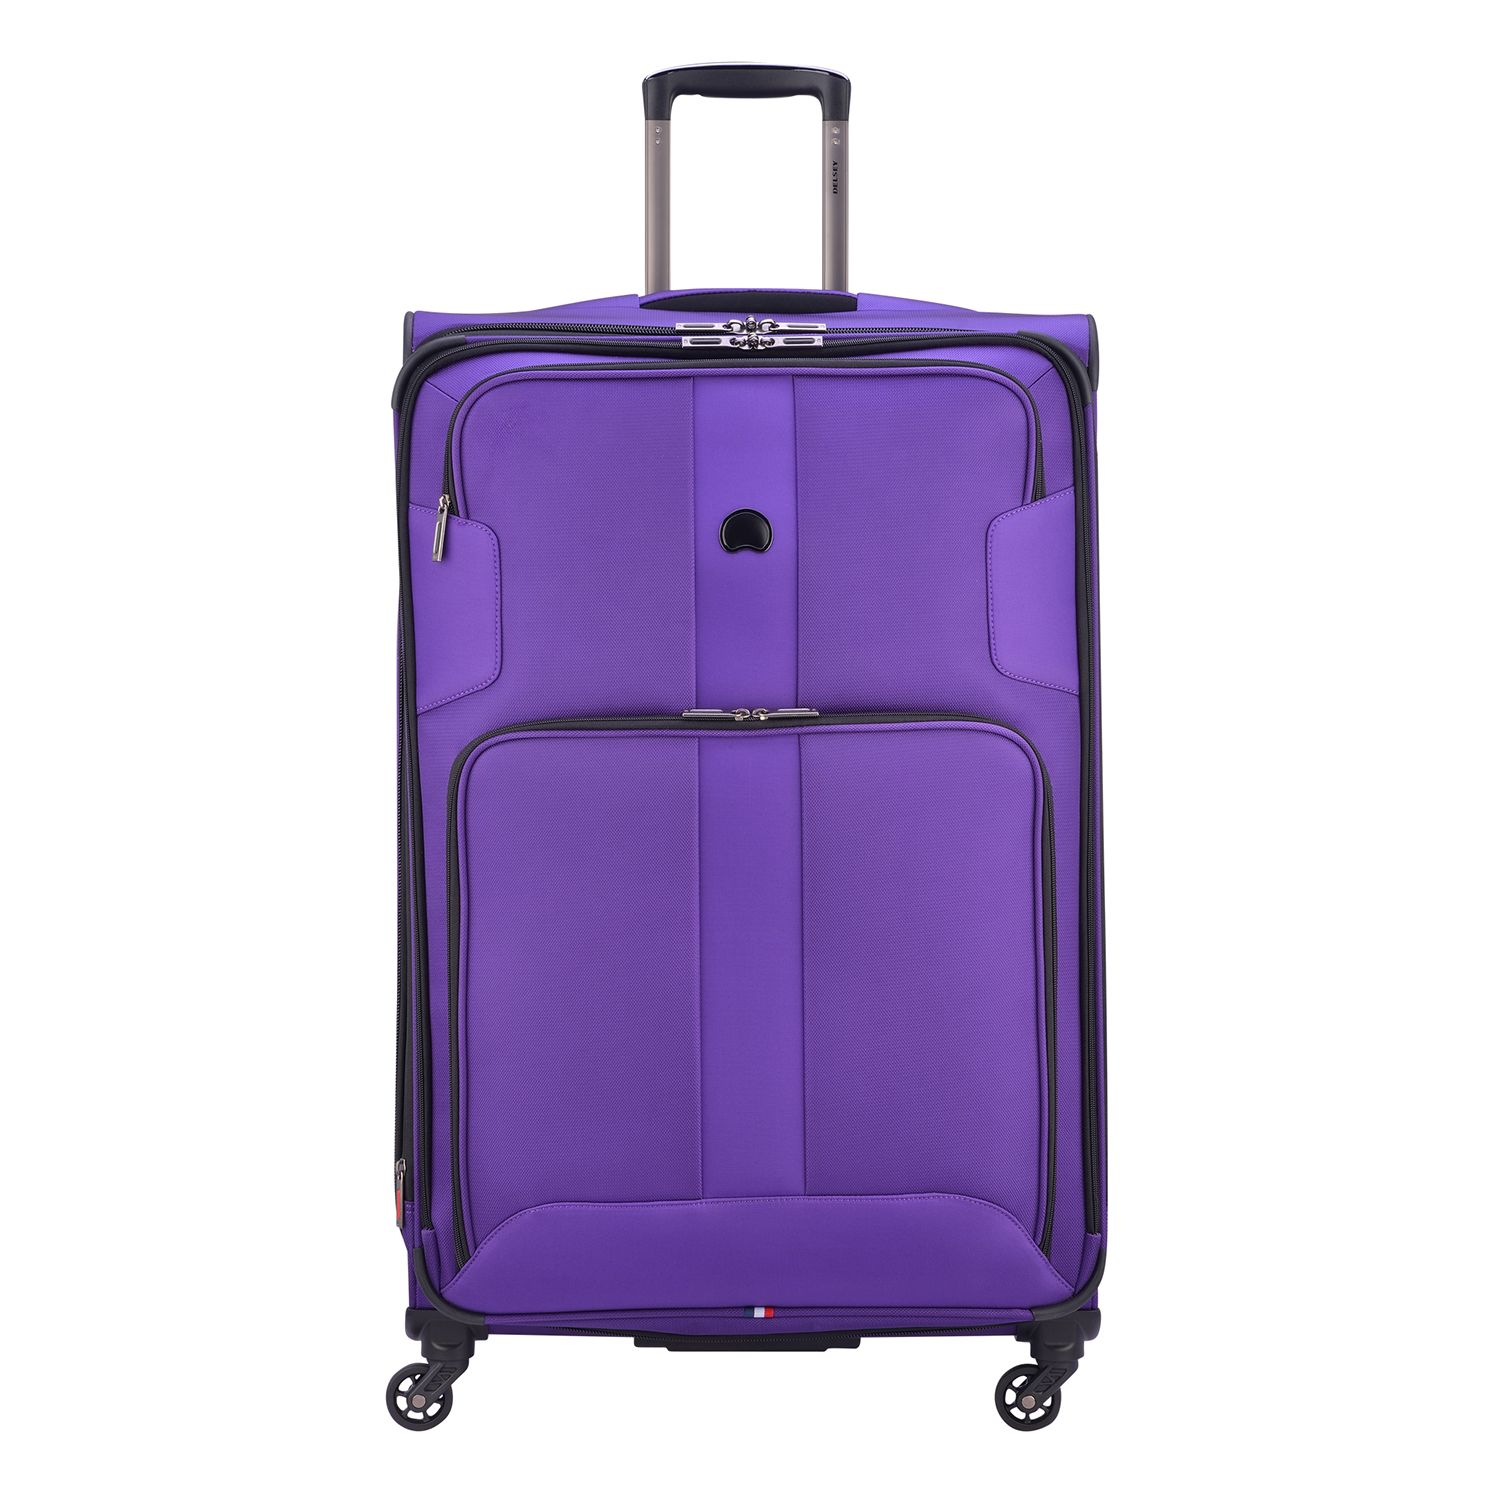 delsey air elite spinner luggage rh kohls com Delsey Carry-On Luggage Delsey Bags